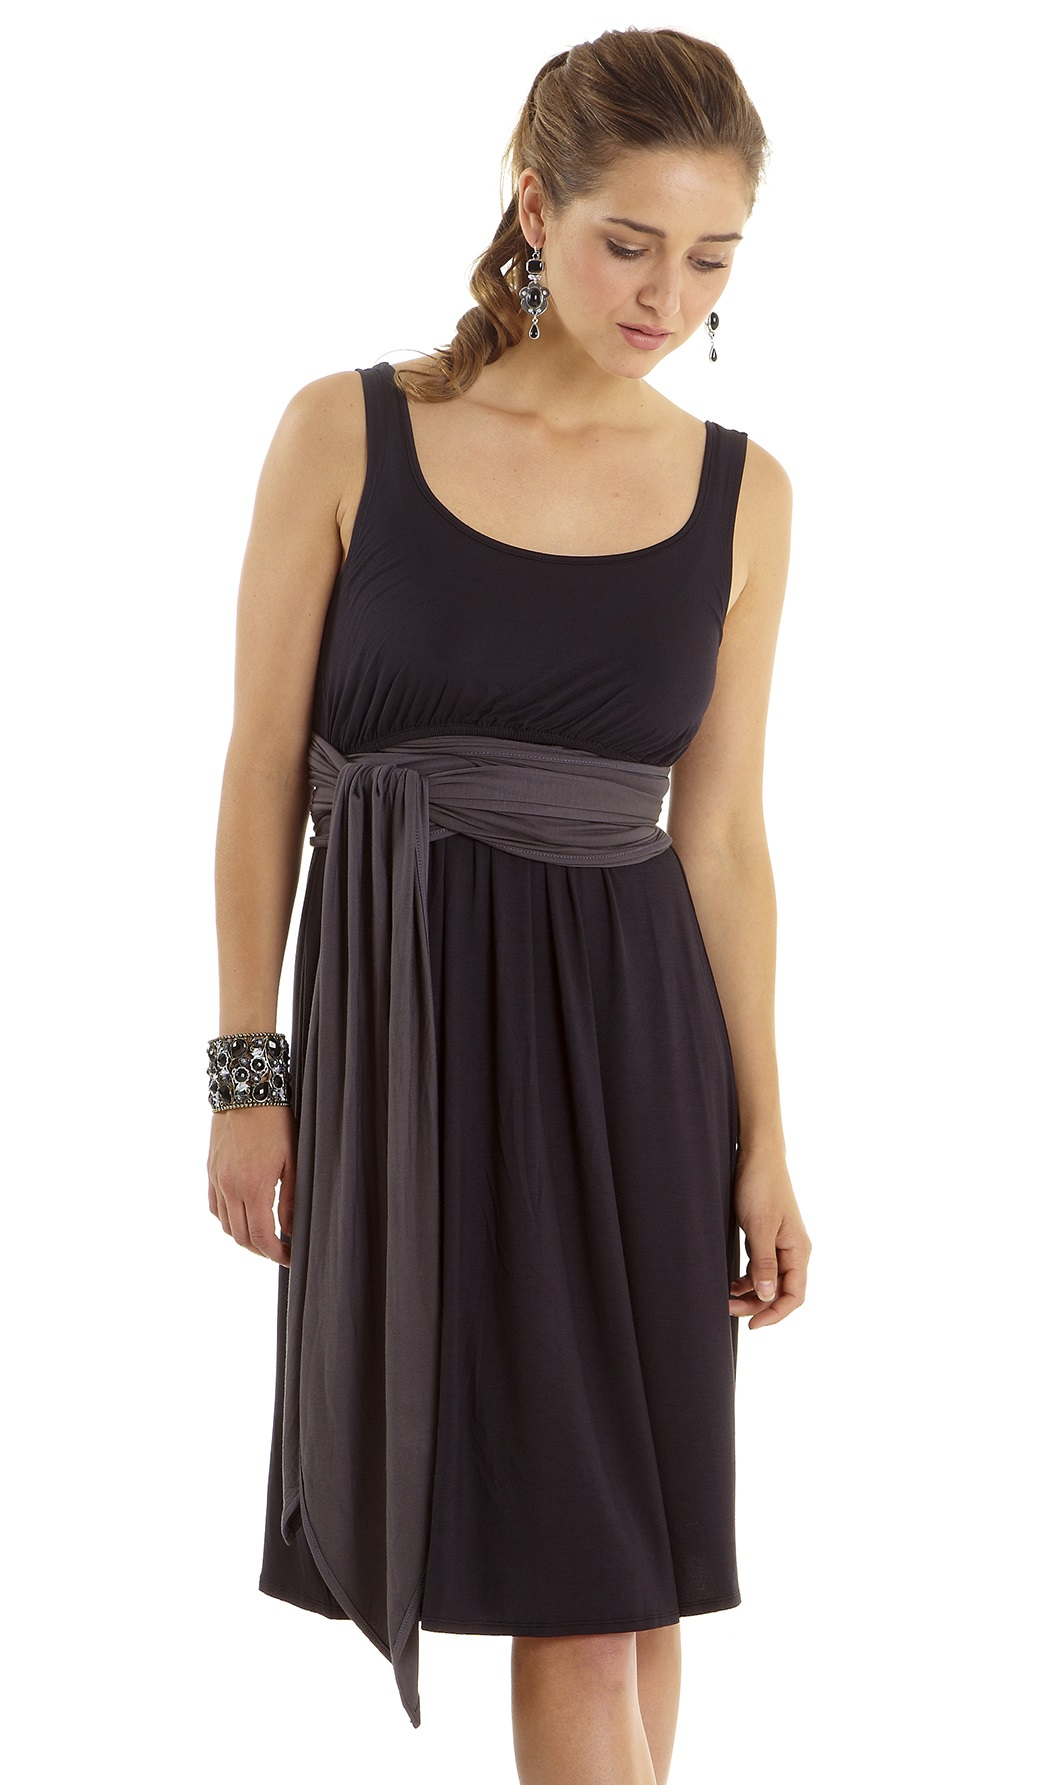 mothers-en-vogue-infinity-wrap-nursing-dress-4-close.jpg